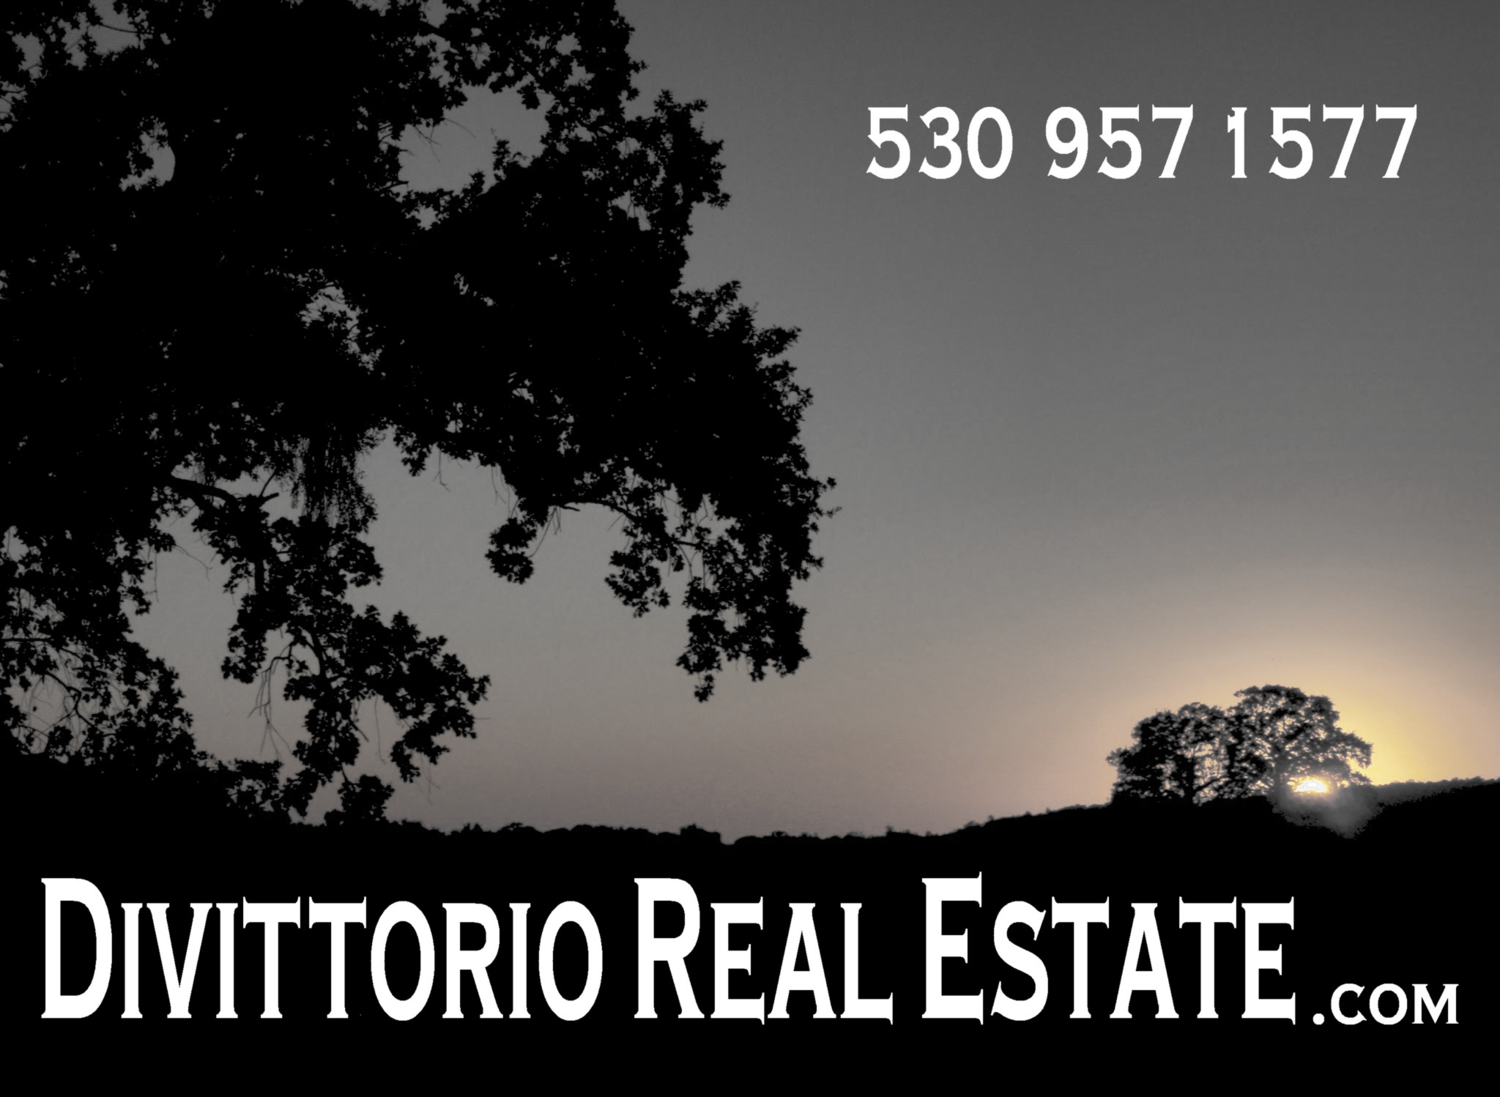 Divittorio Real Estate